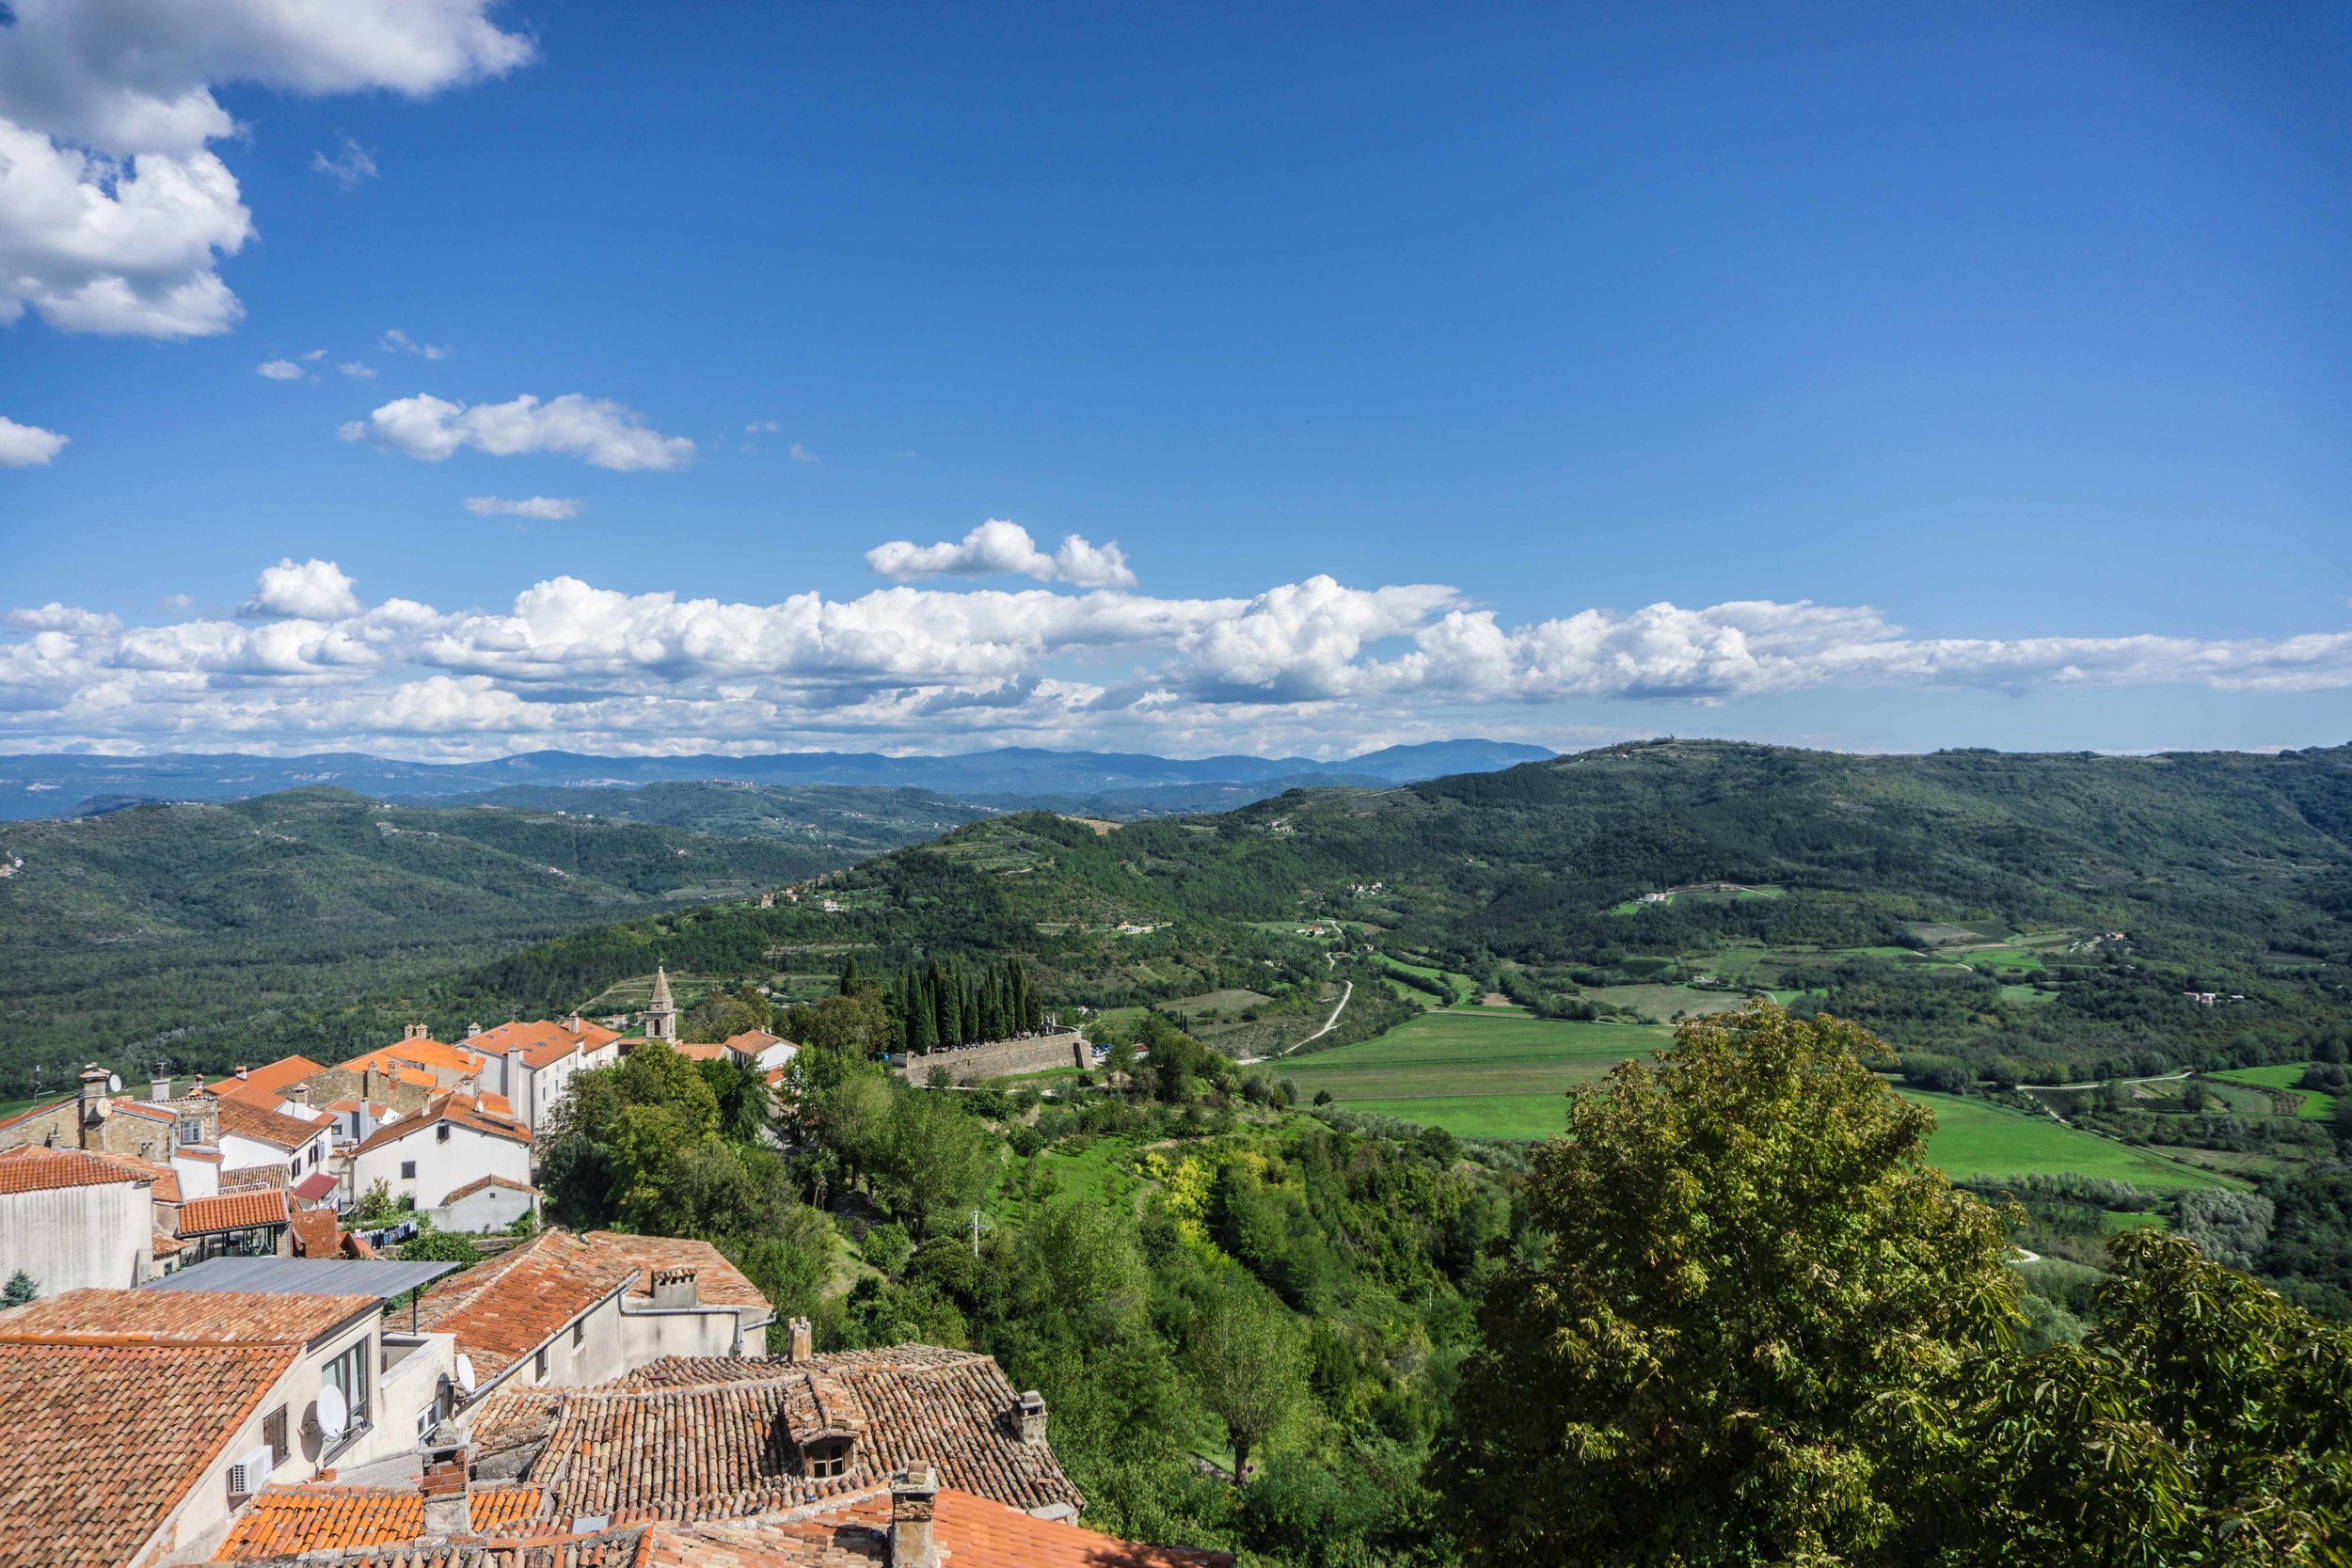 View from the top of Motovun